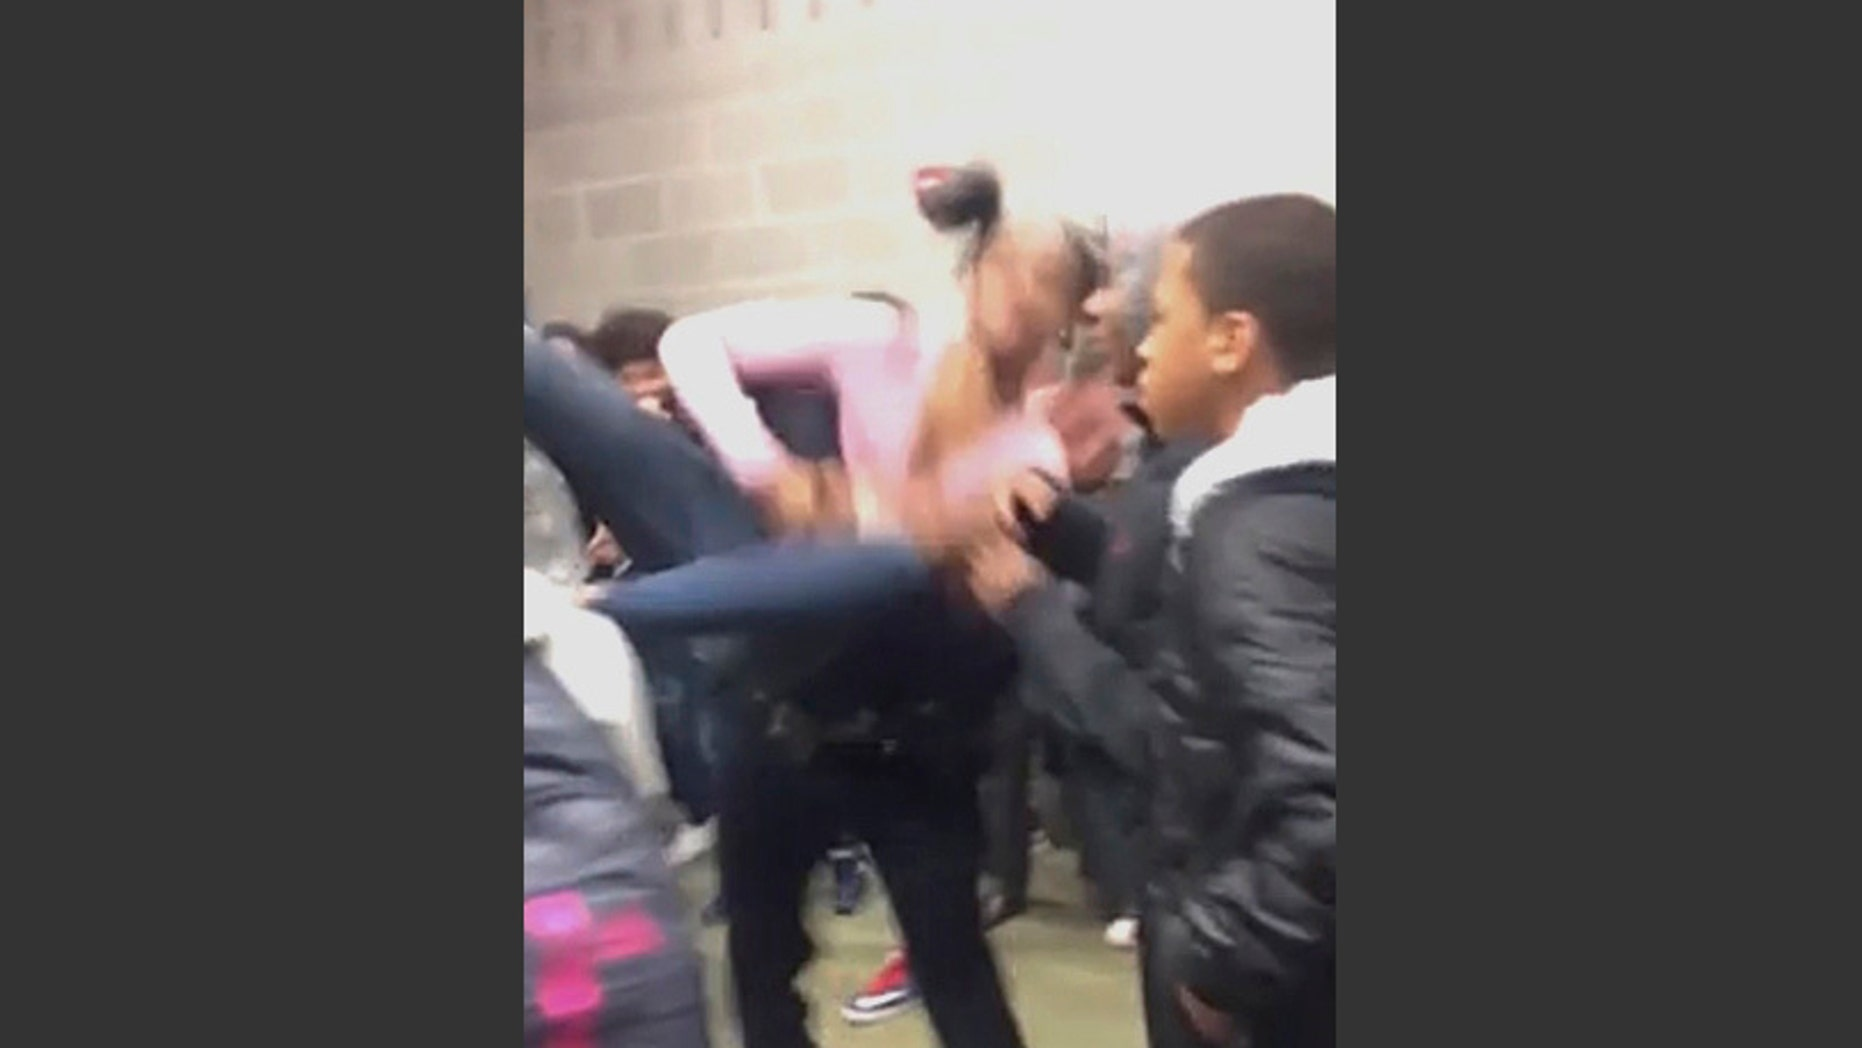 In this Tuesday, Jan. 3, 2017, image made from video and released by Pam C. Akpuda, officer Ruben De Los Santos of the Rolesville Police Department slams a teenage girl to the floor in Rolesville, N.C. The student who was slammed to the ground by a police officer was trying to break up a fight involving her sister, said the 15-year-old who posted video of the incident. (Pam C. Akpuda via AP)